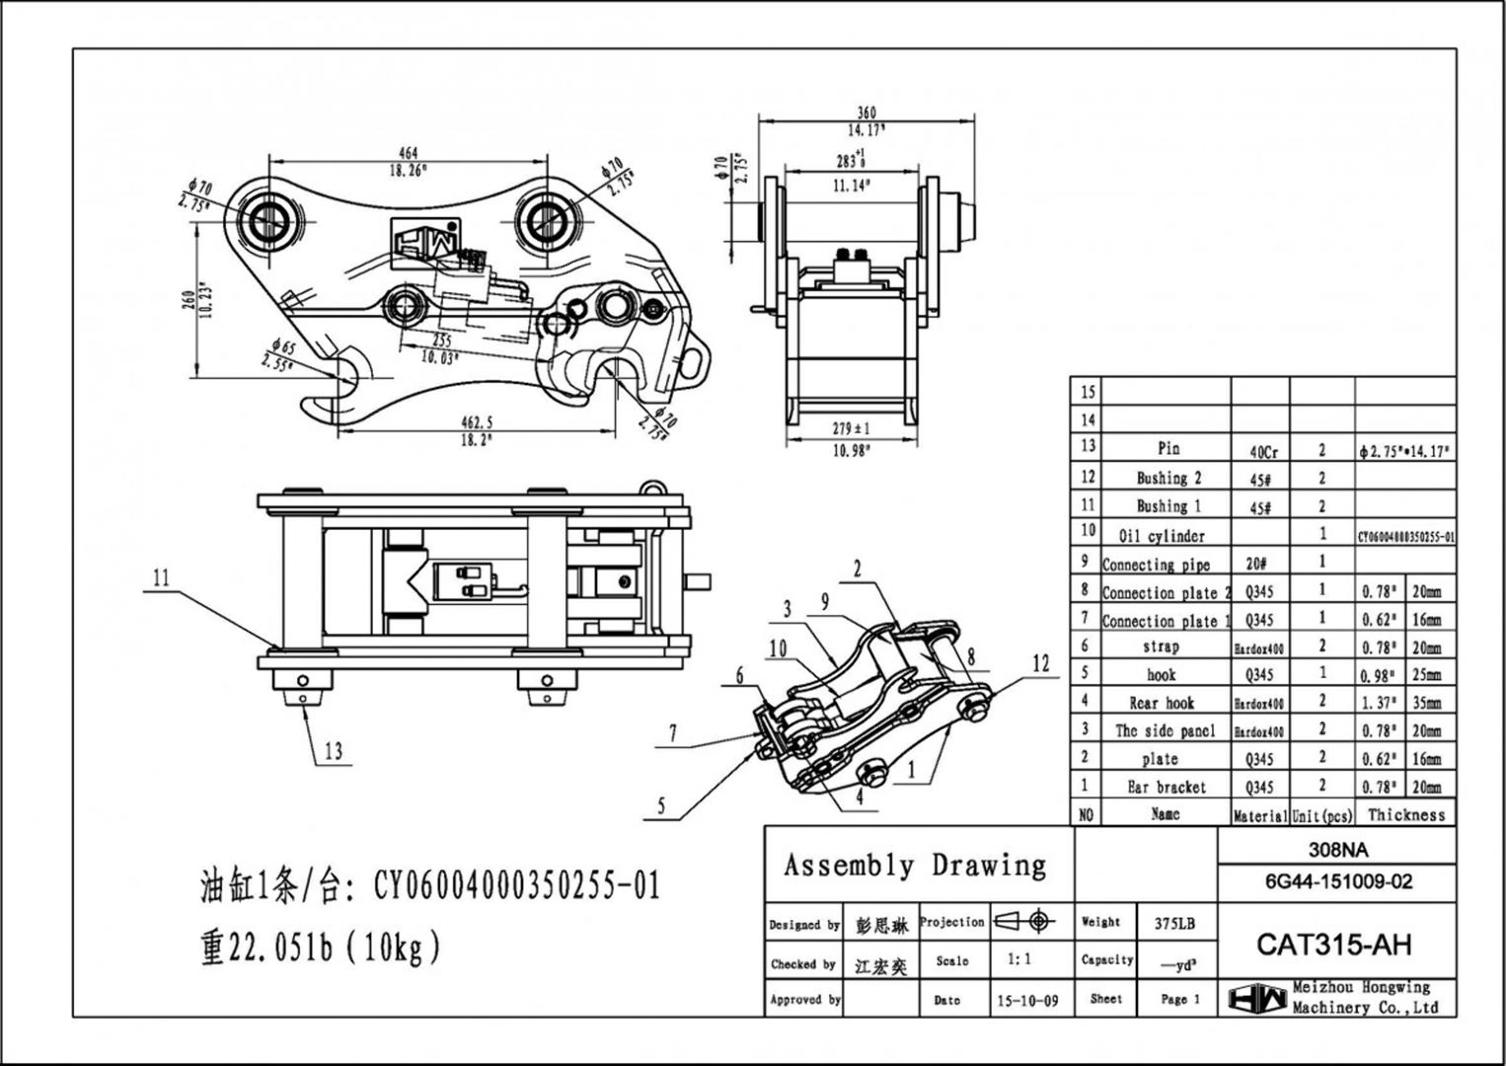 [DIAGRAM] Scotts S2554 Wiring Diagram FULL Version HD